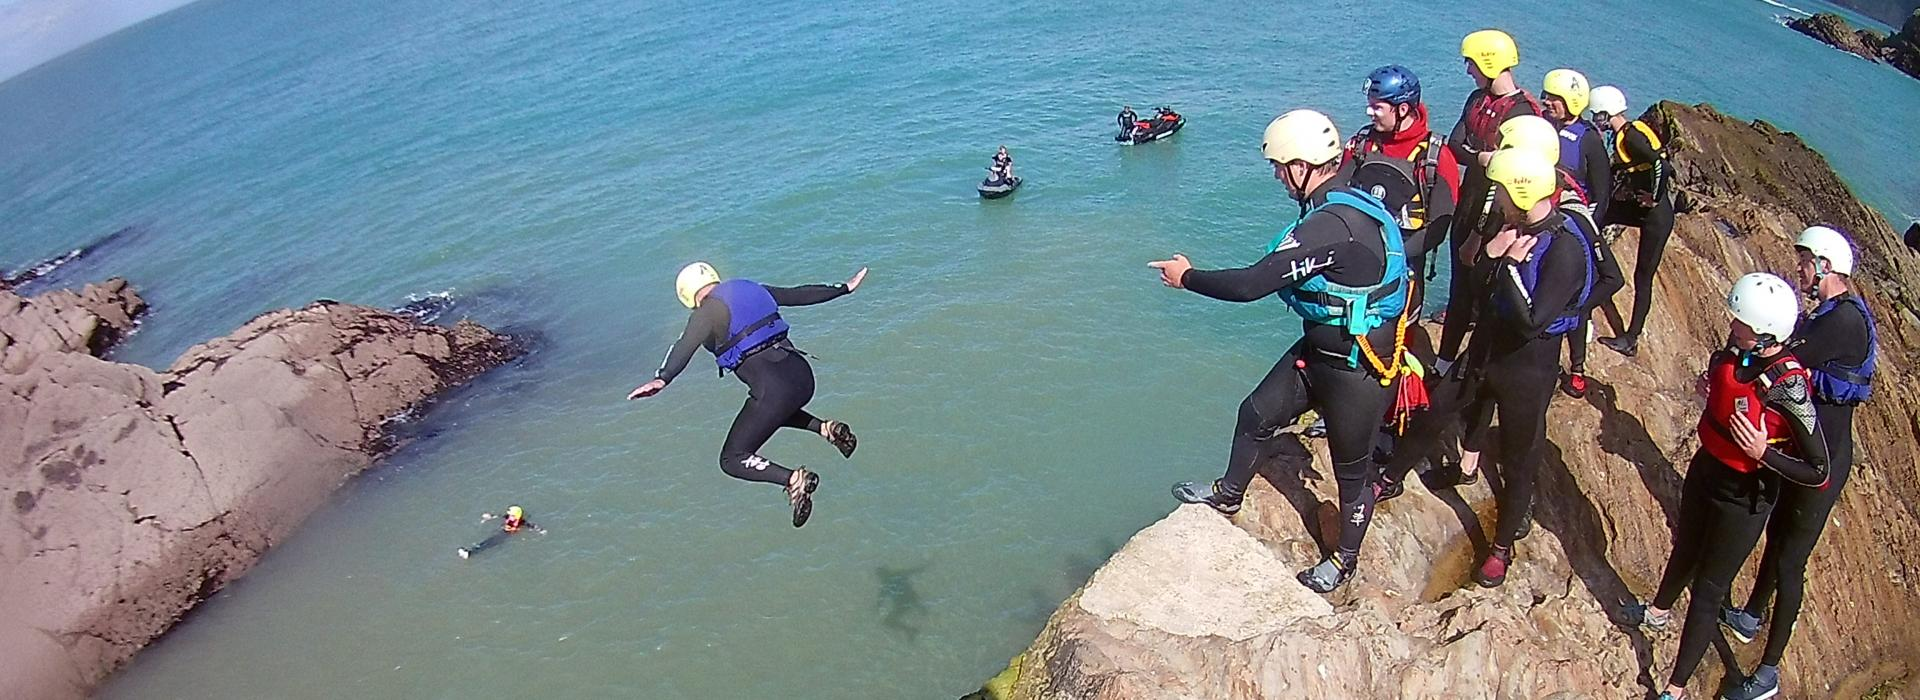 coasteering devon, instructor, training courses, instructor courses, watersports training